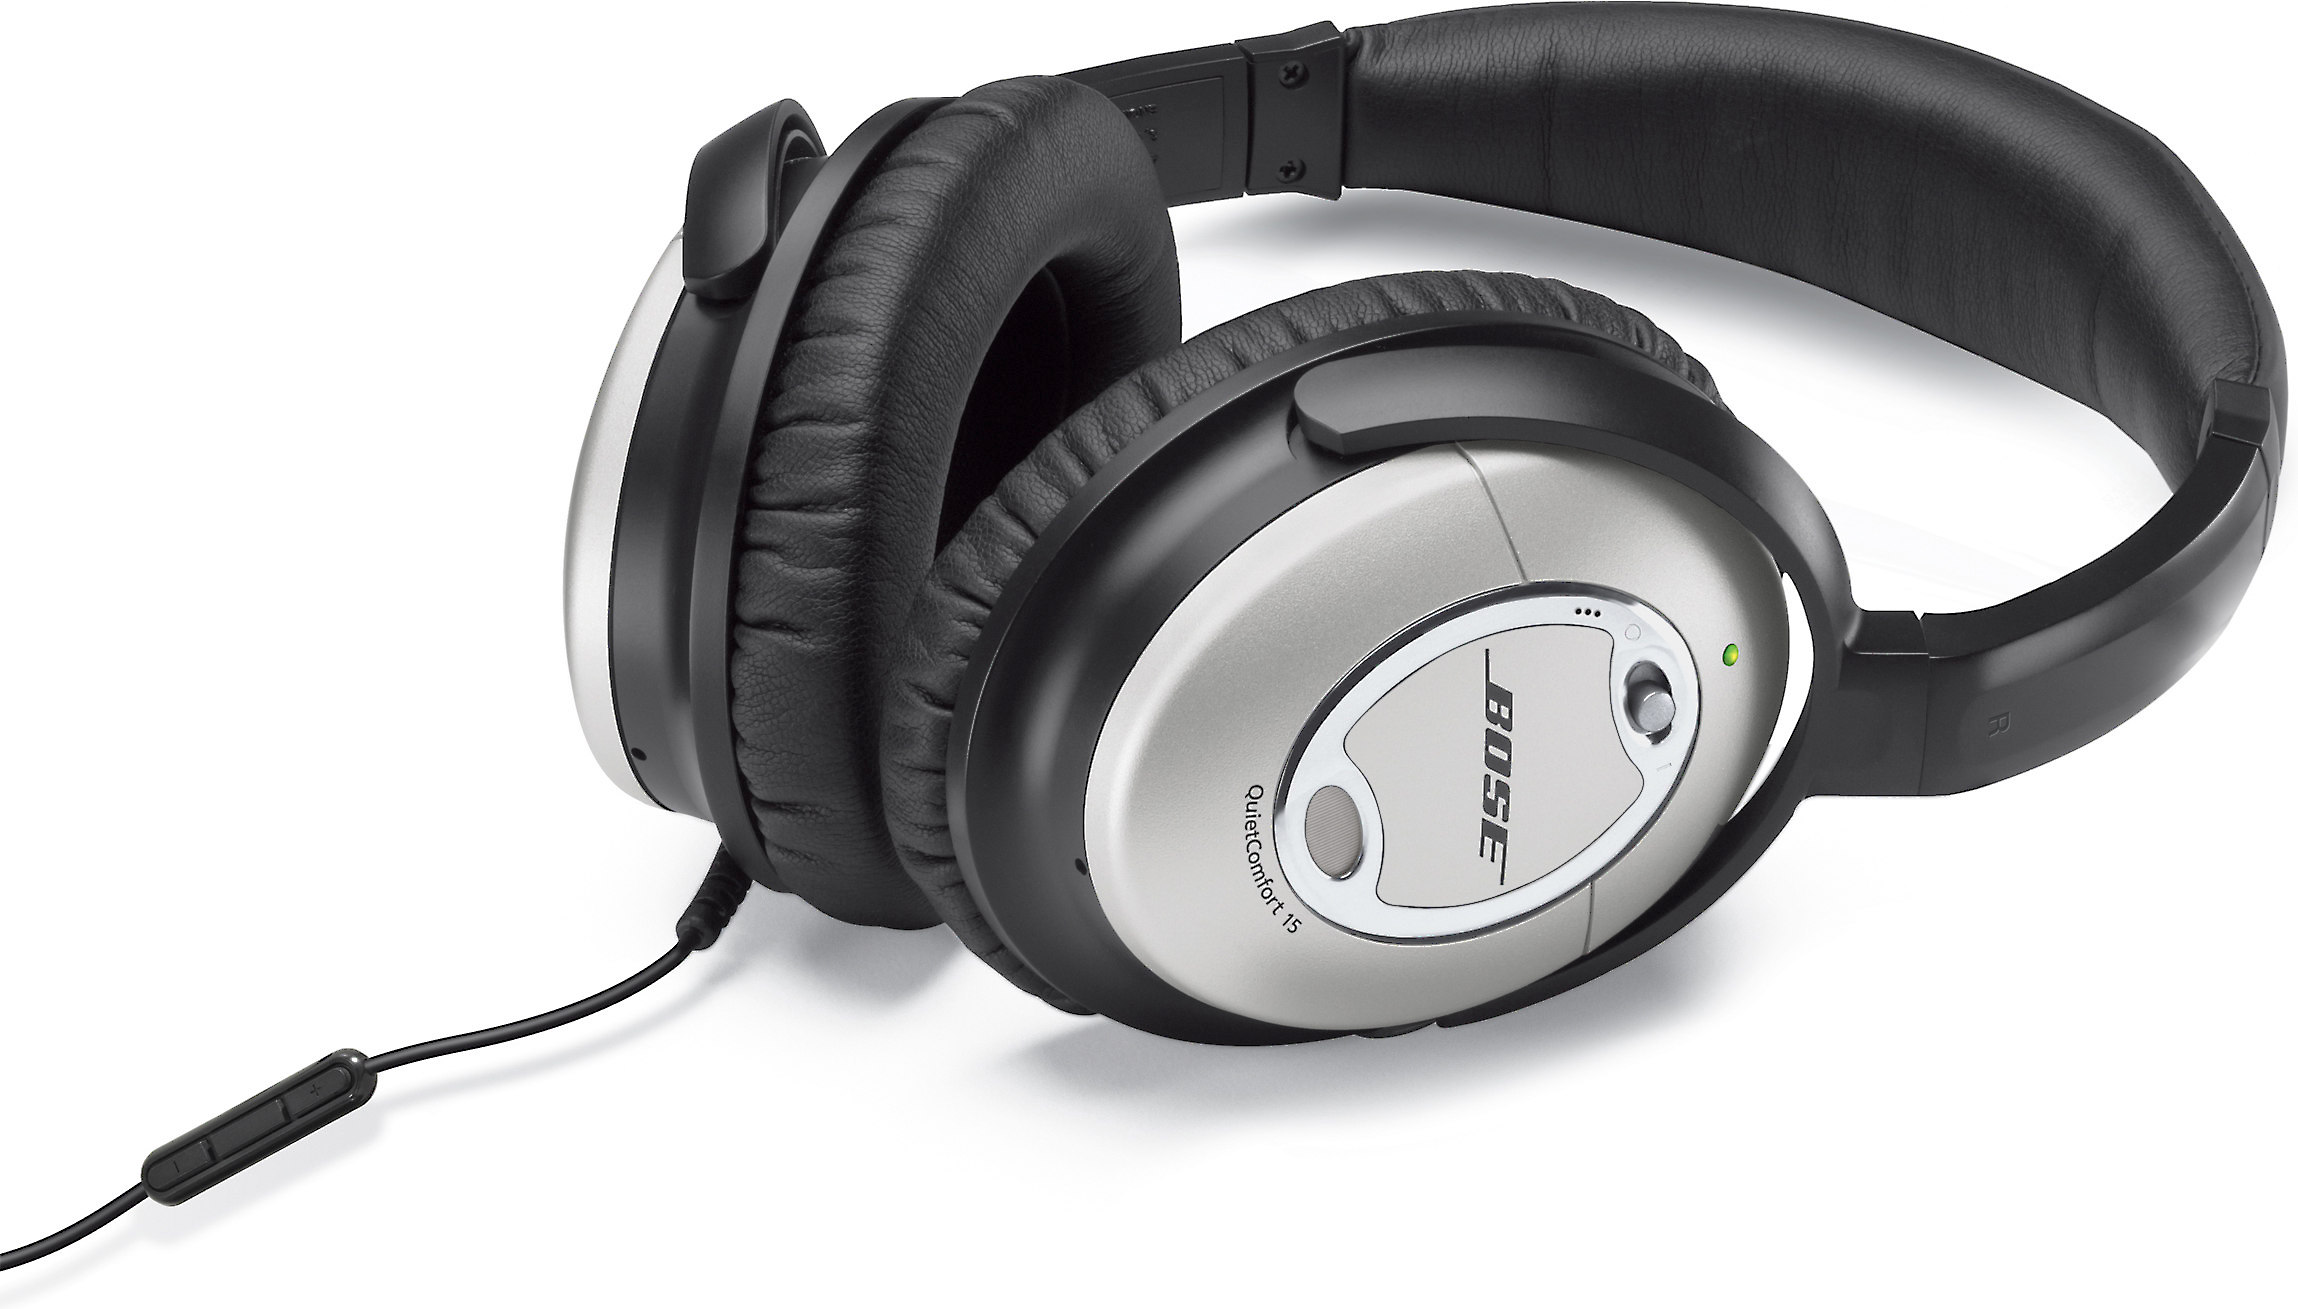 9357a8224db Bose® QuietComfort® 15 Acoustic Noise Cancelling® headphones at Crutchfield